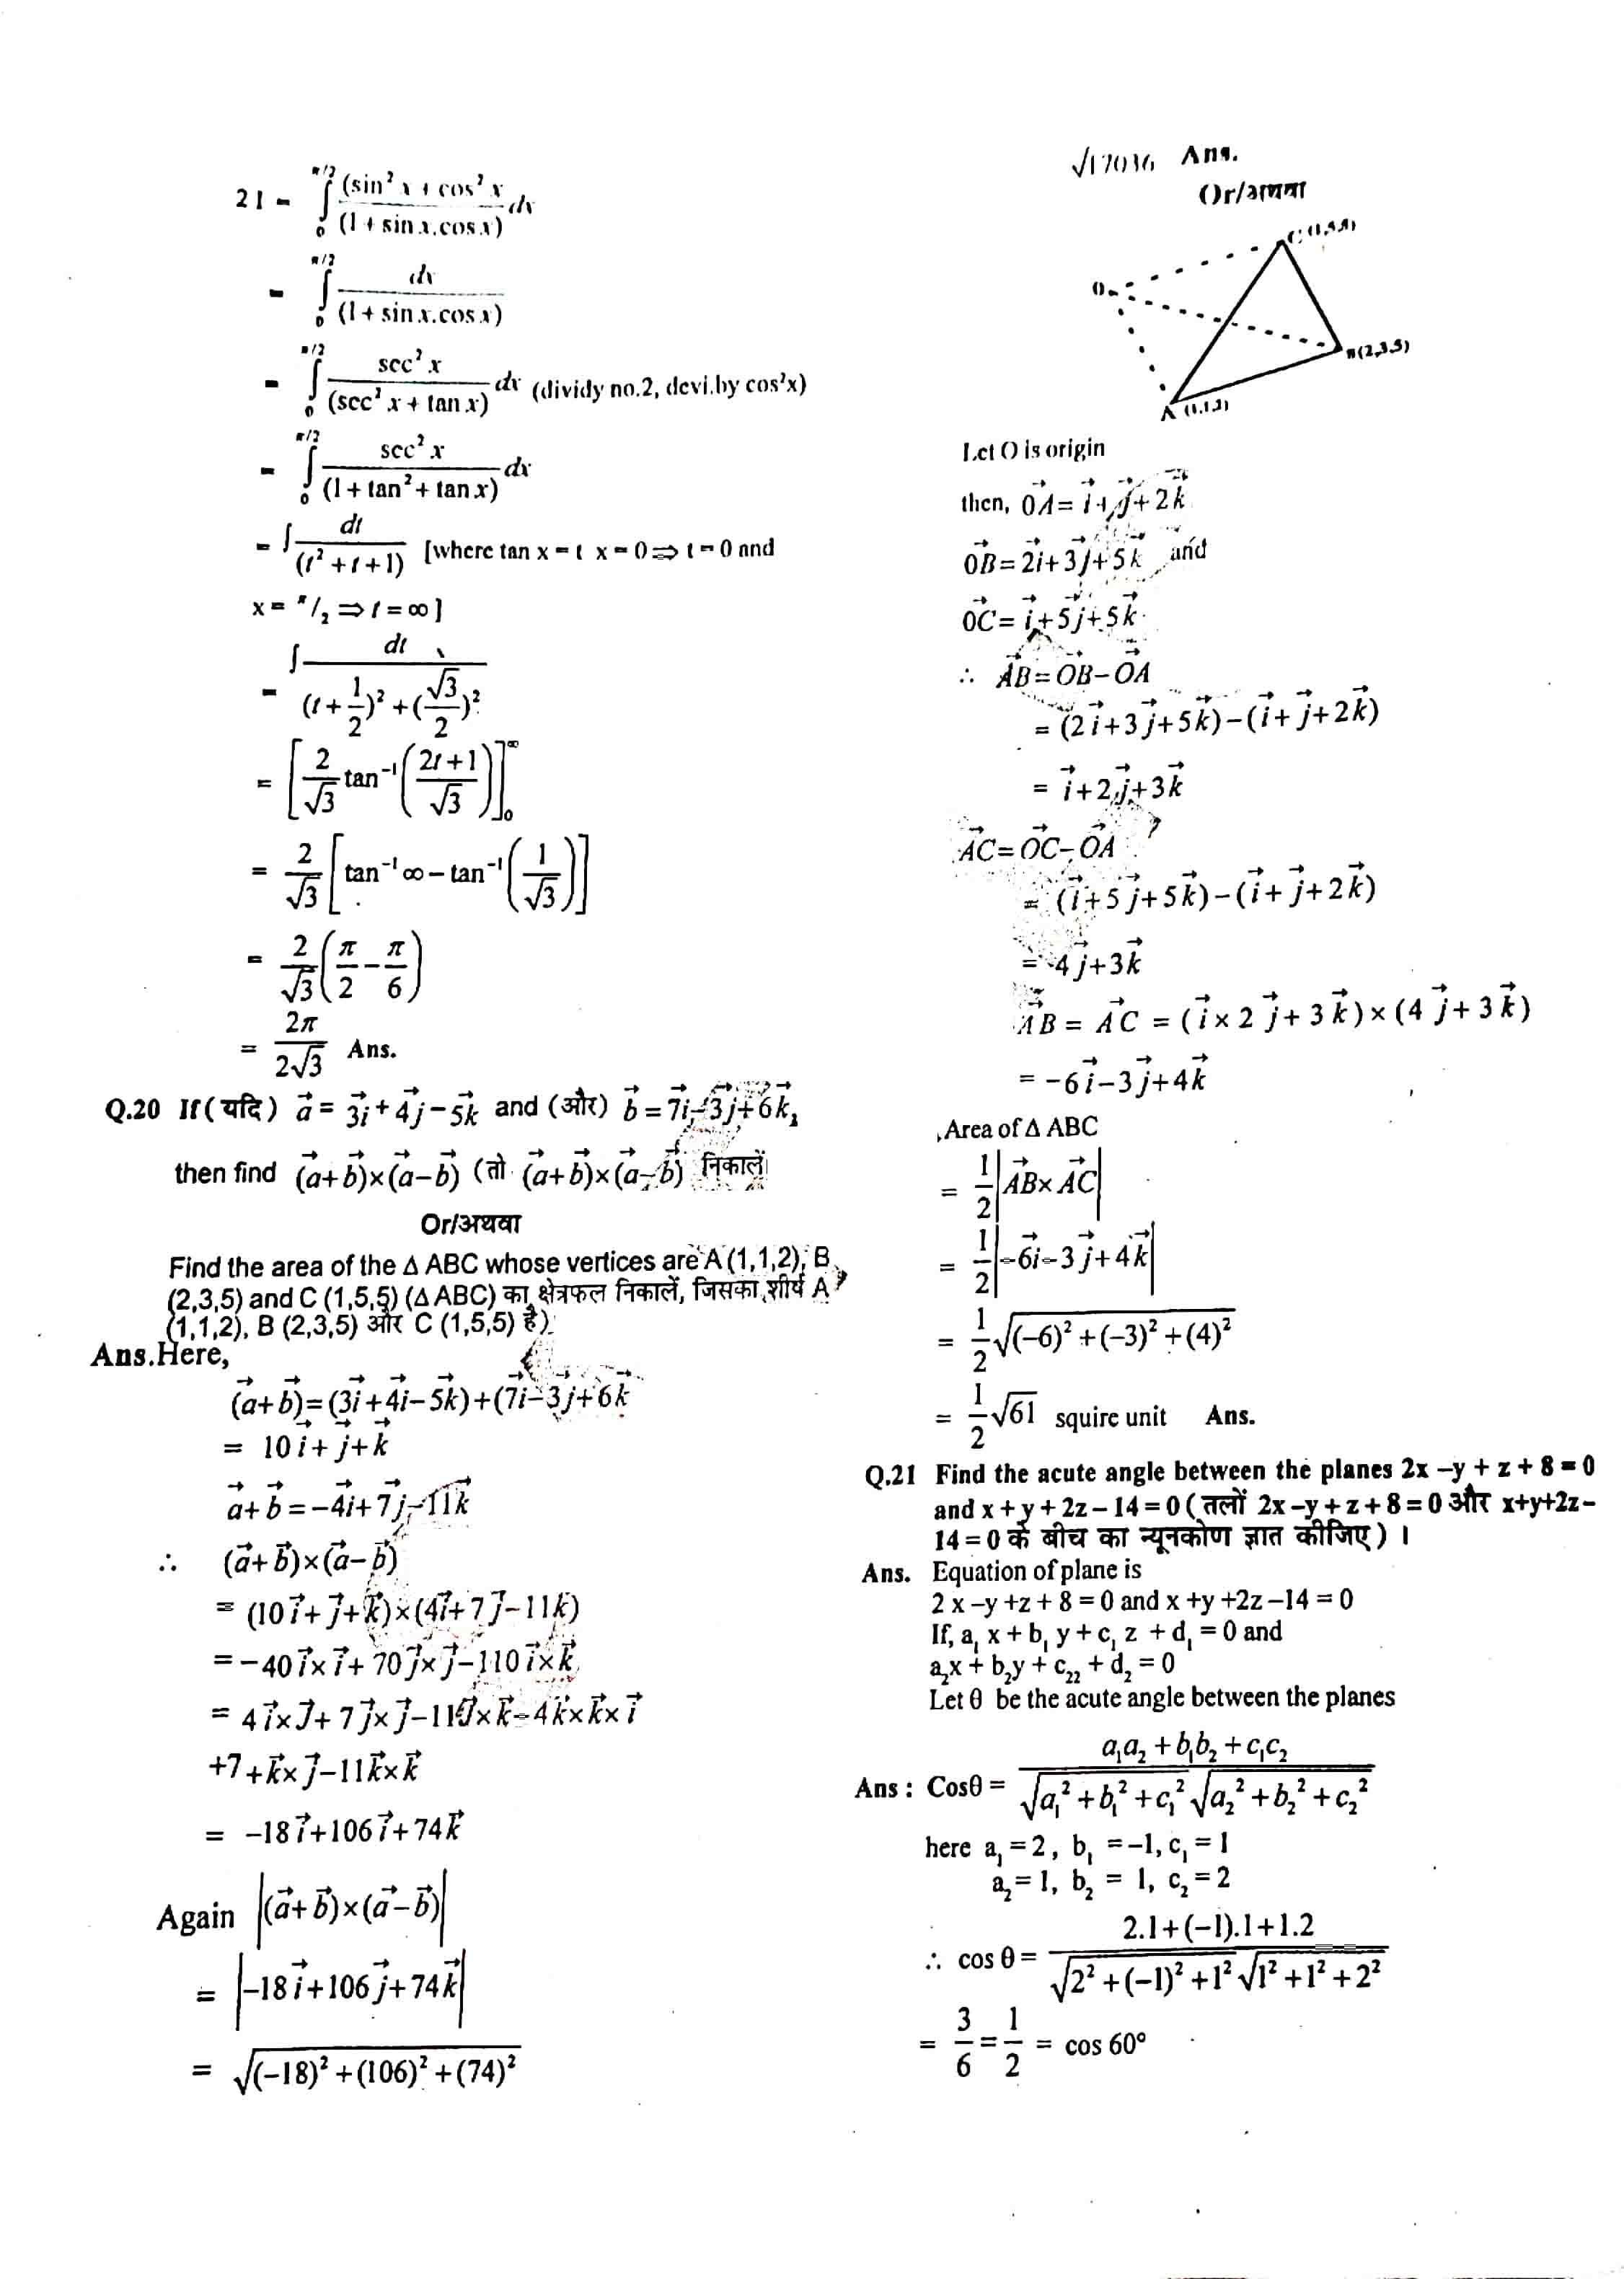 JAC Class 12 math 2012 Question Paper 05